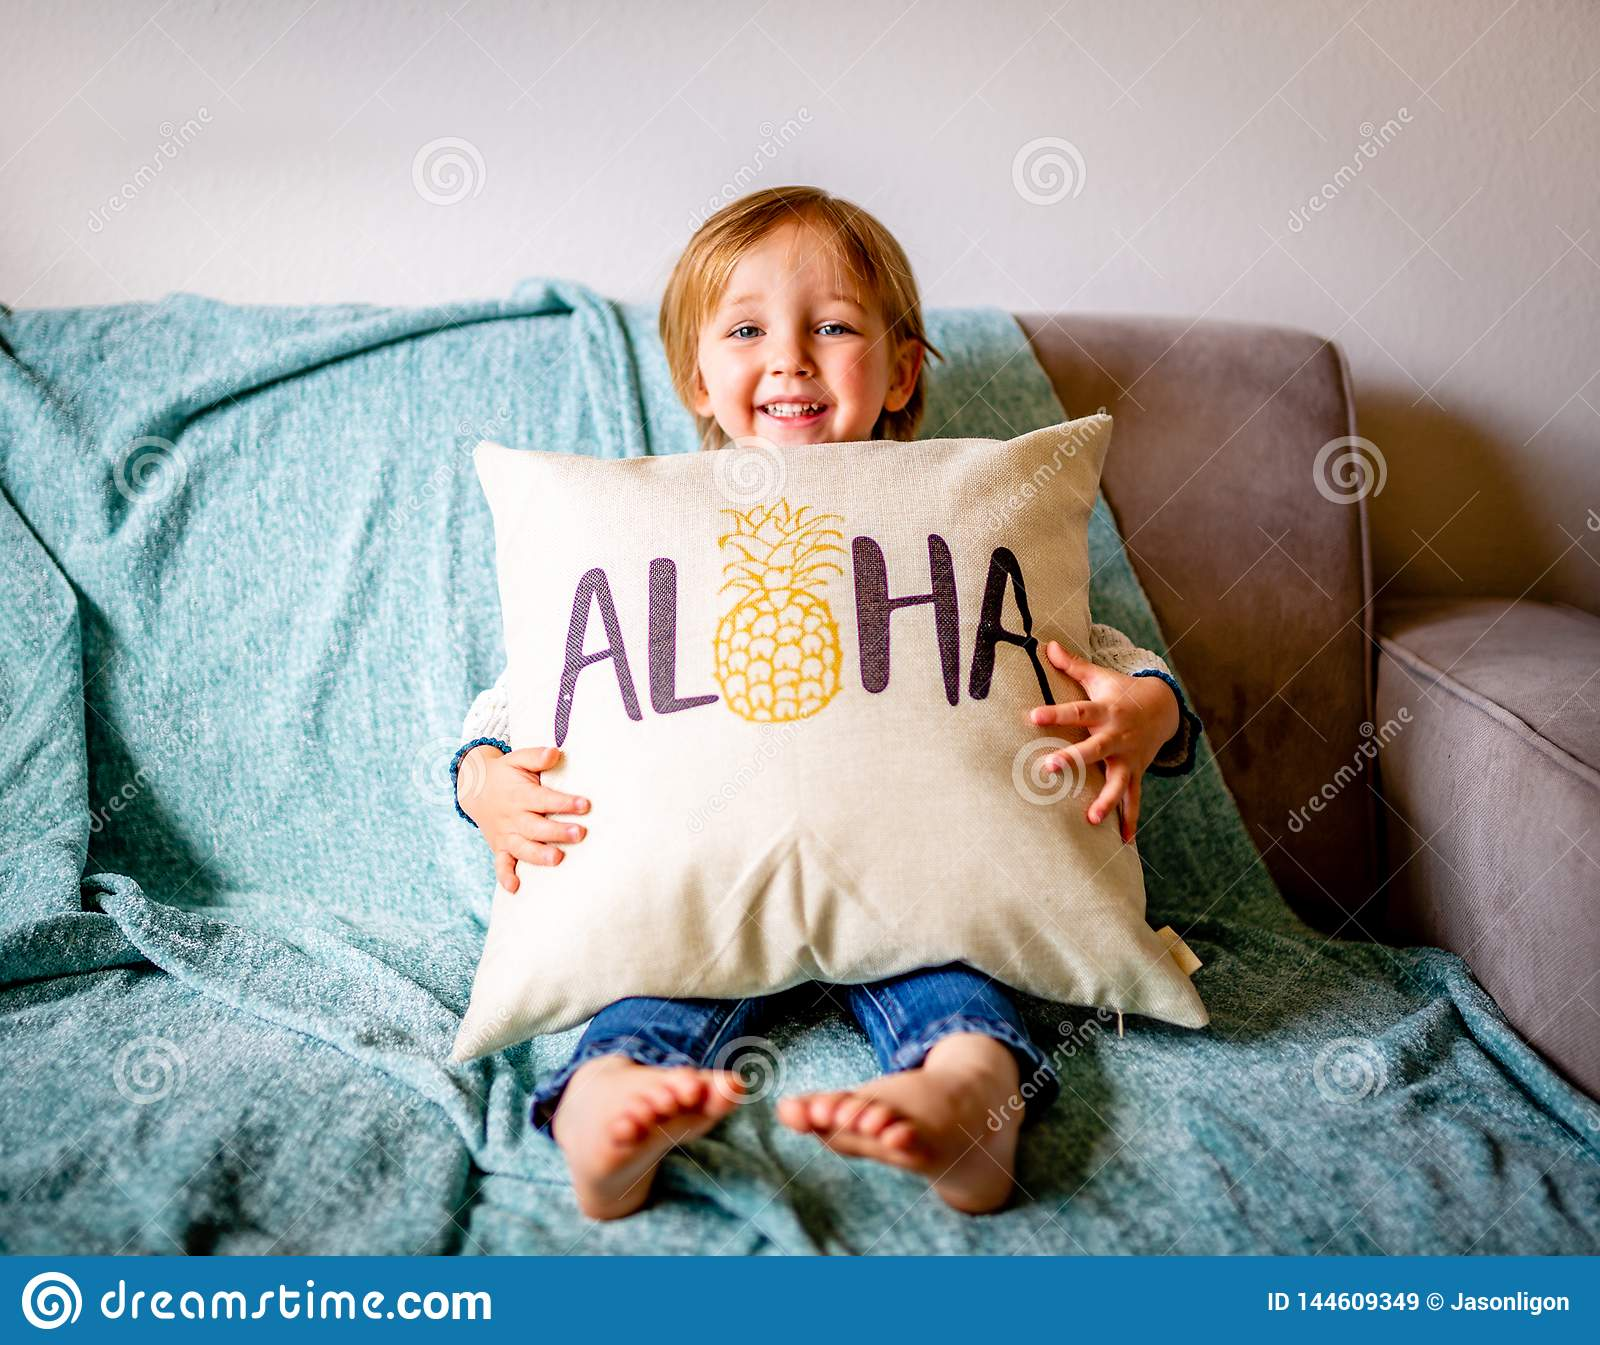 Young Boy Sits on Couch